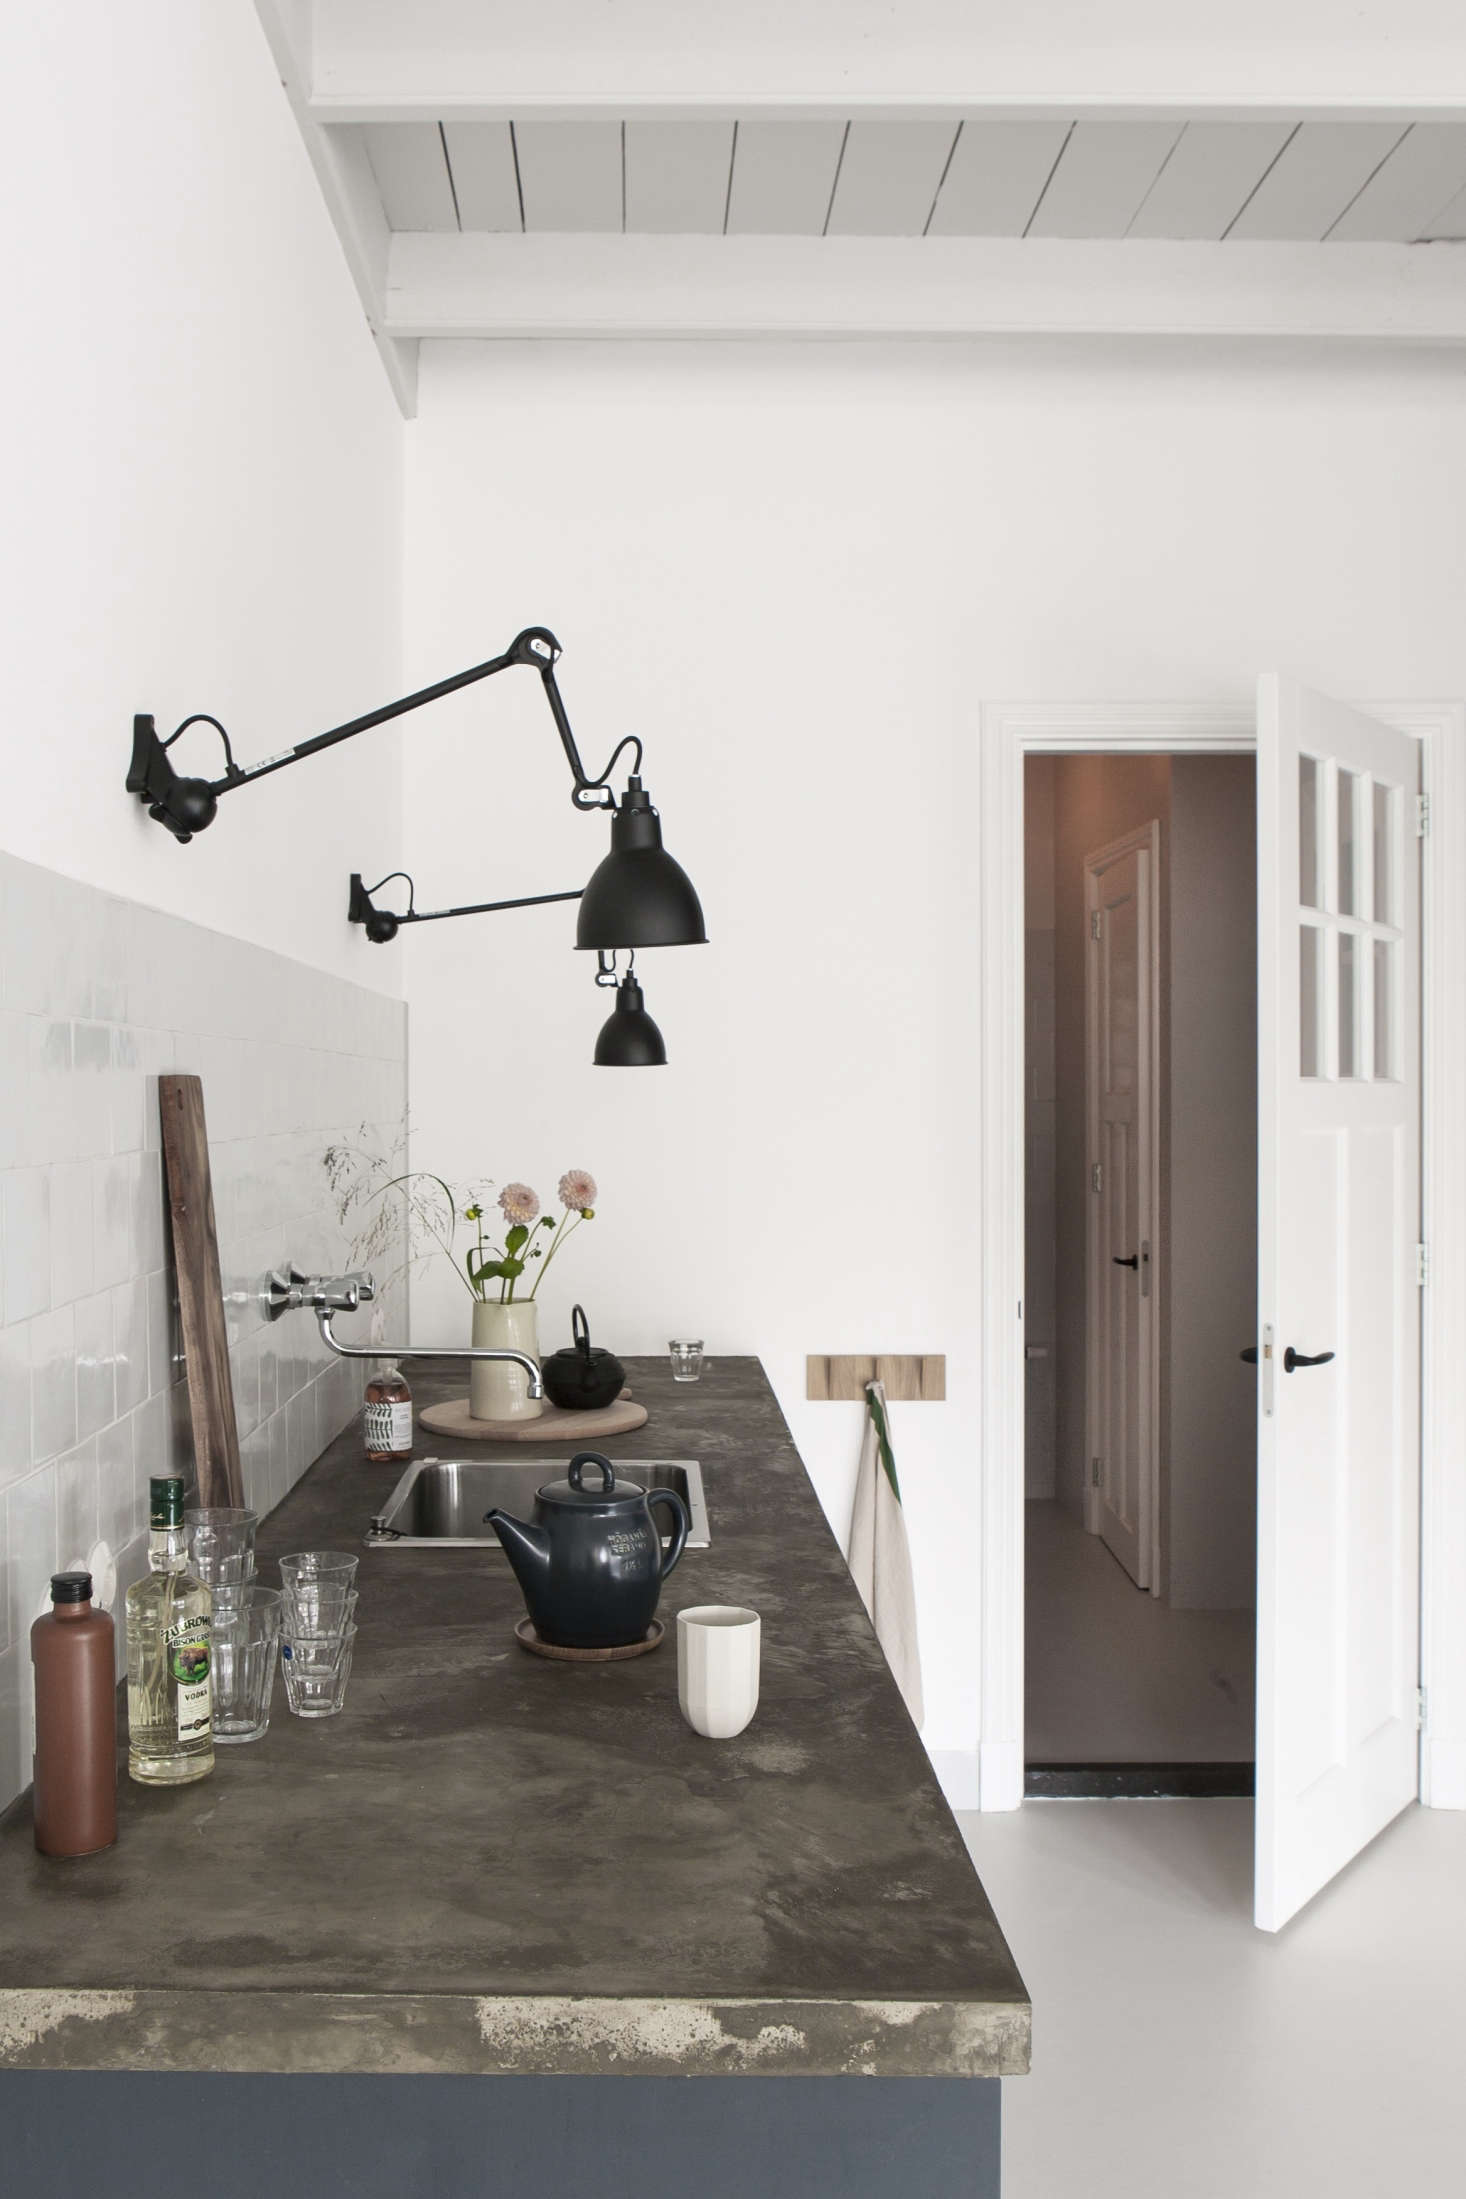 The adjustable sconces are French classics by Lampe Gras.